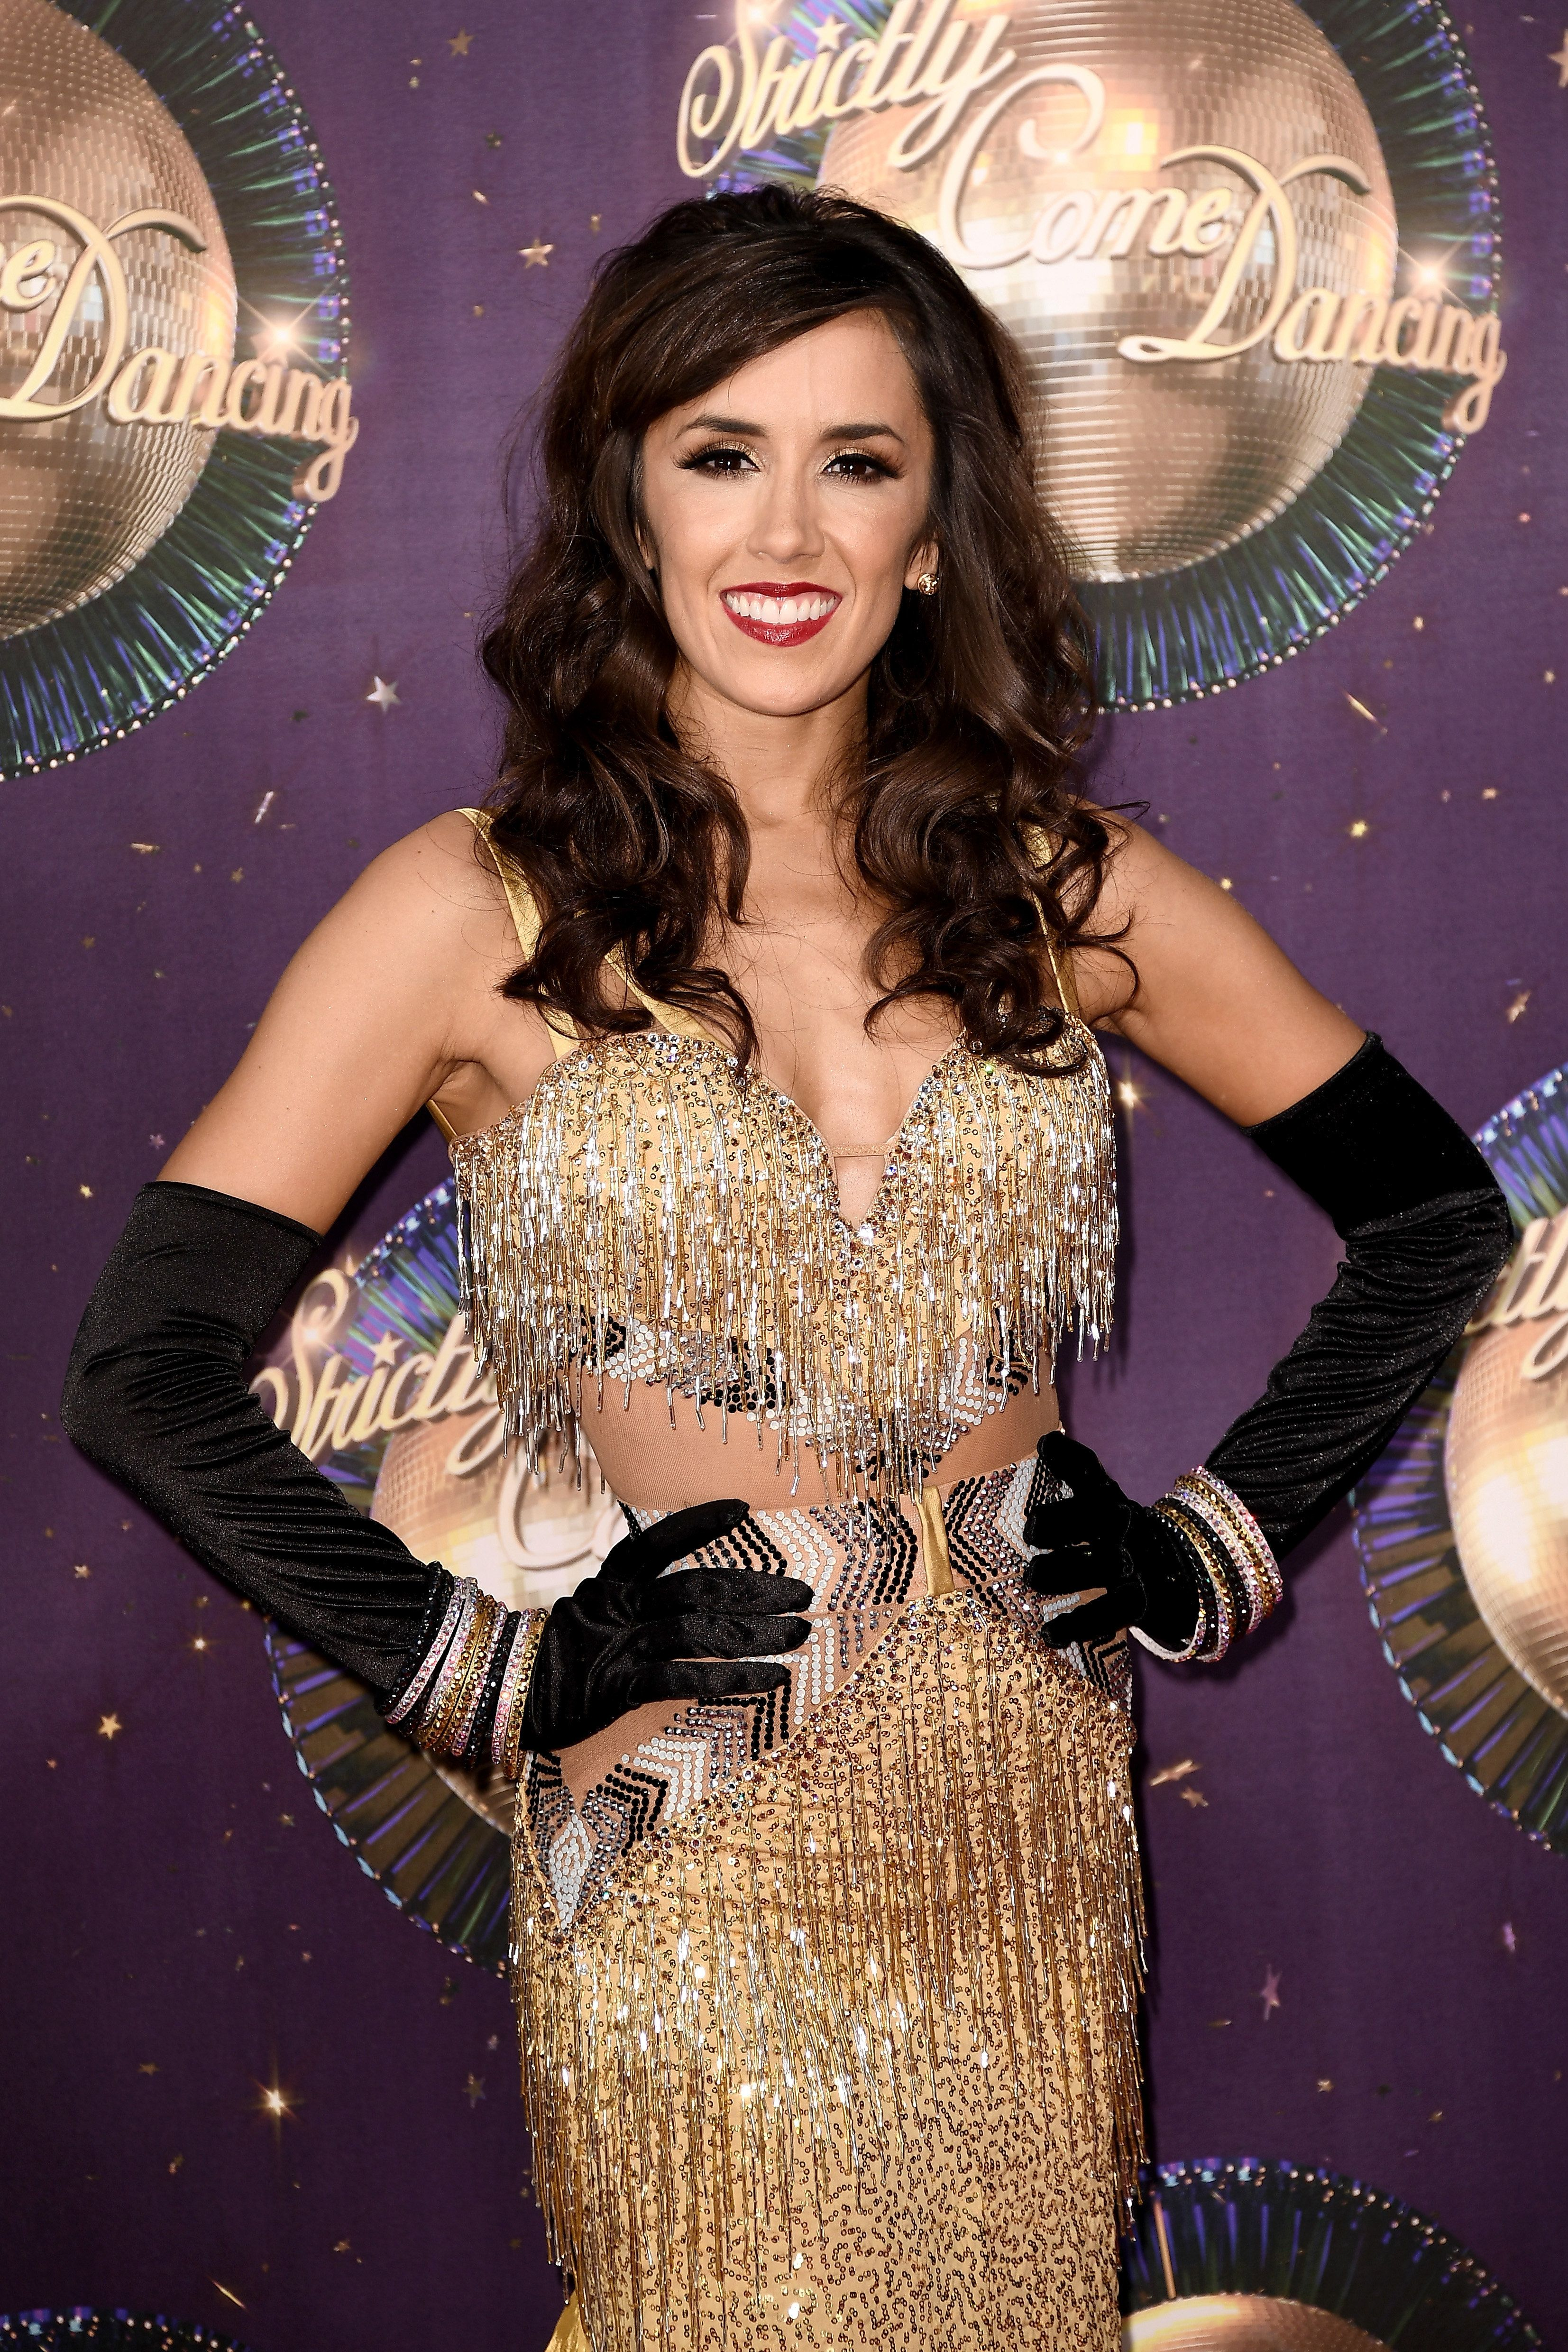 'Strictly' Pro Janette Manrara Left Needing Medical Attention After Accident During